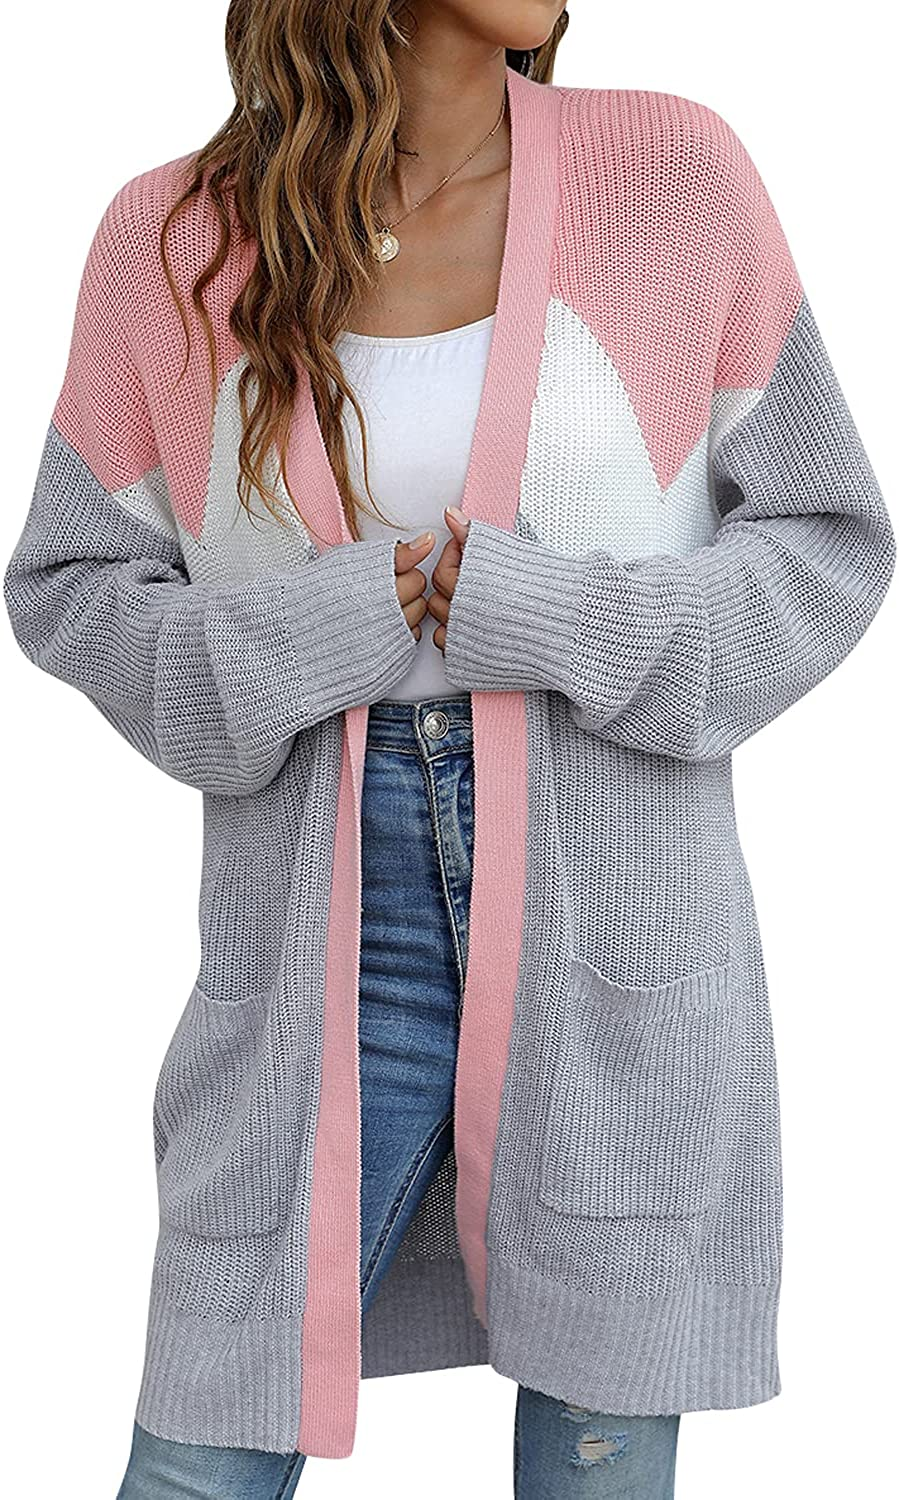 BMJL Women's Chunky Long Cardigans Color Block Oversized Batwing Cable Knit Sweaters Coats with Pockets